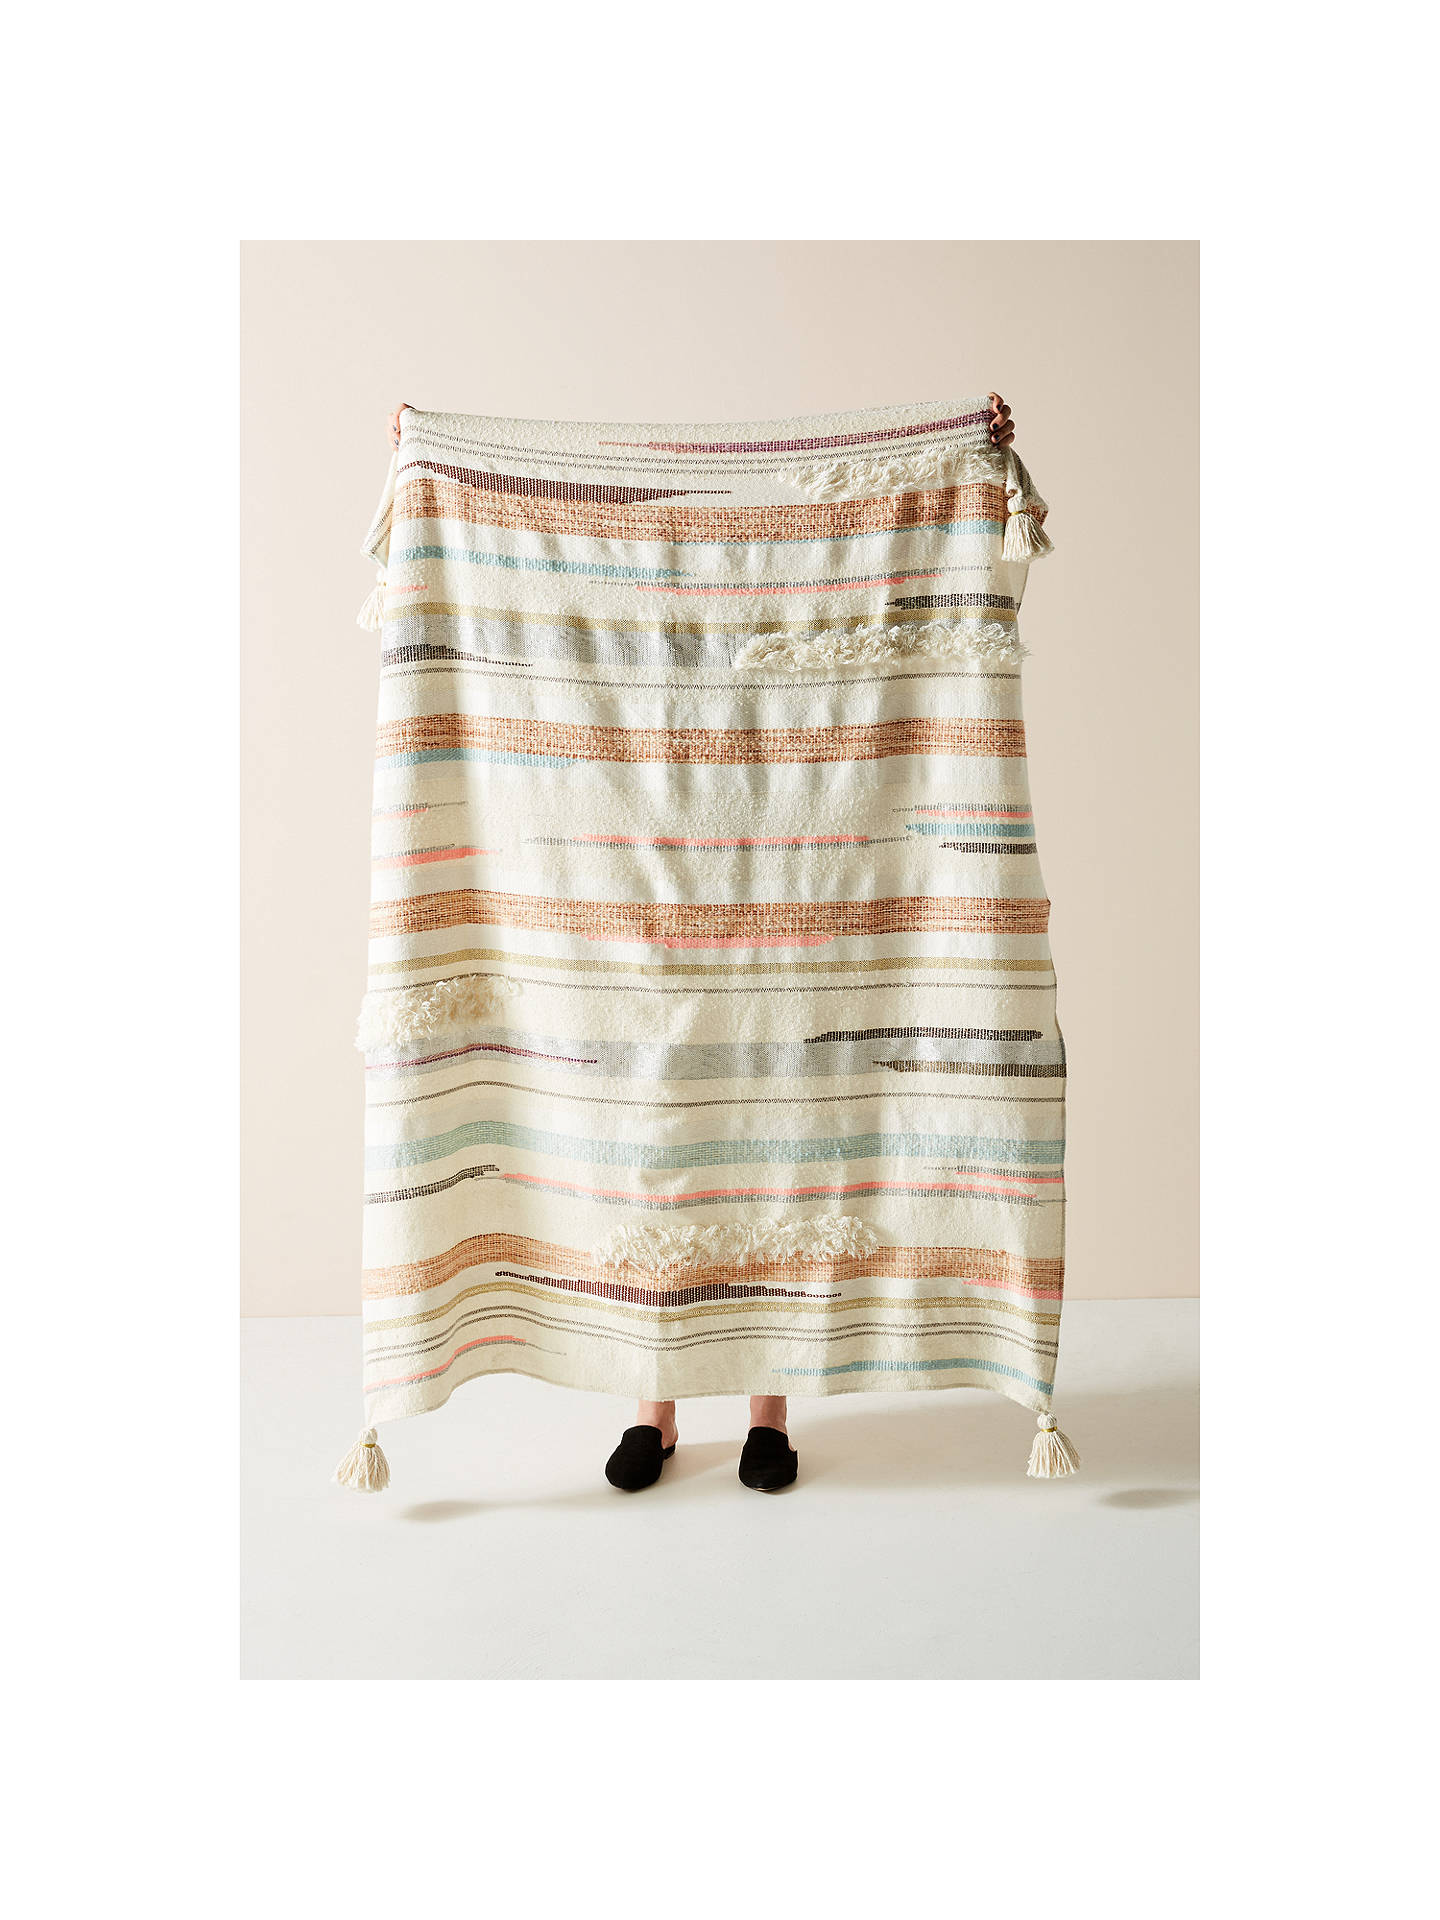 BuyAnthropologie Jess Feury Throw, Multi Online at johnlewis.com